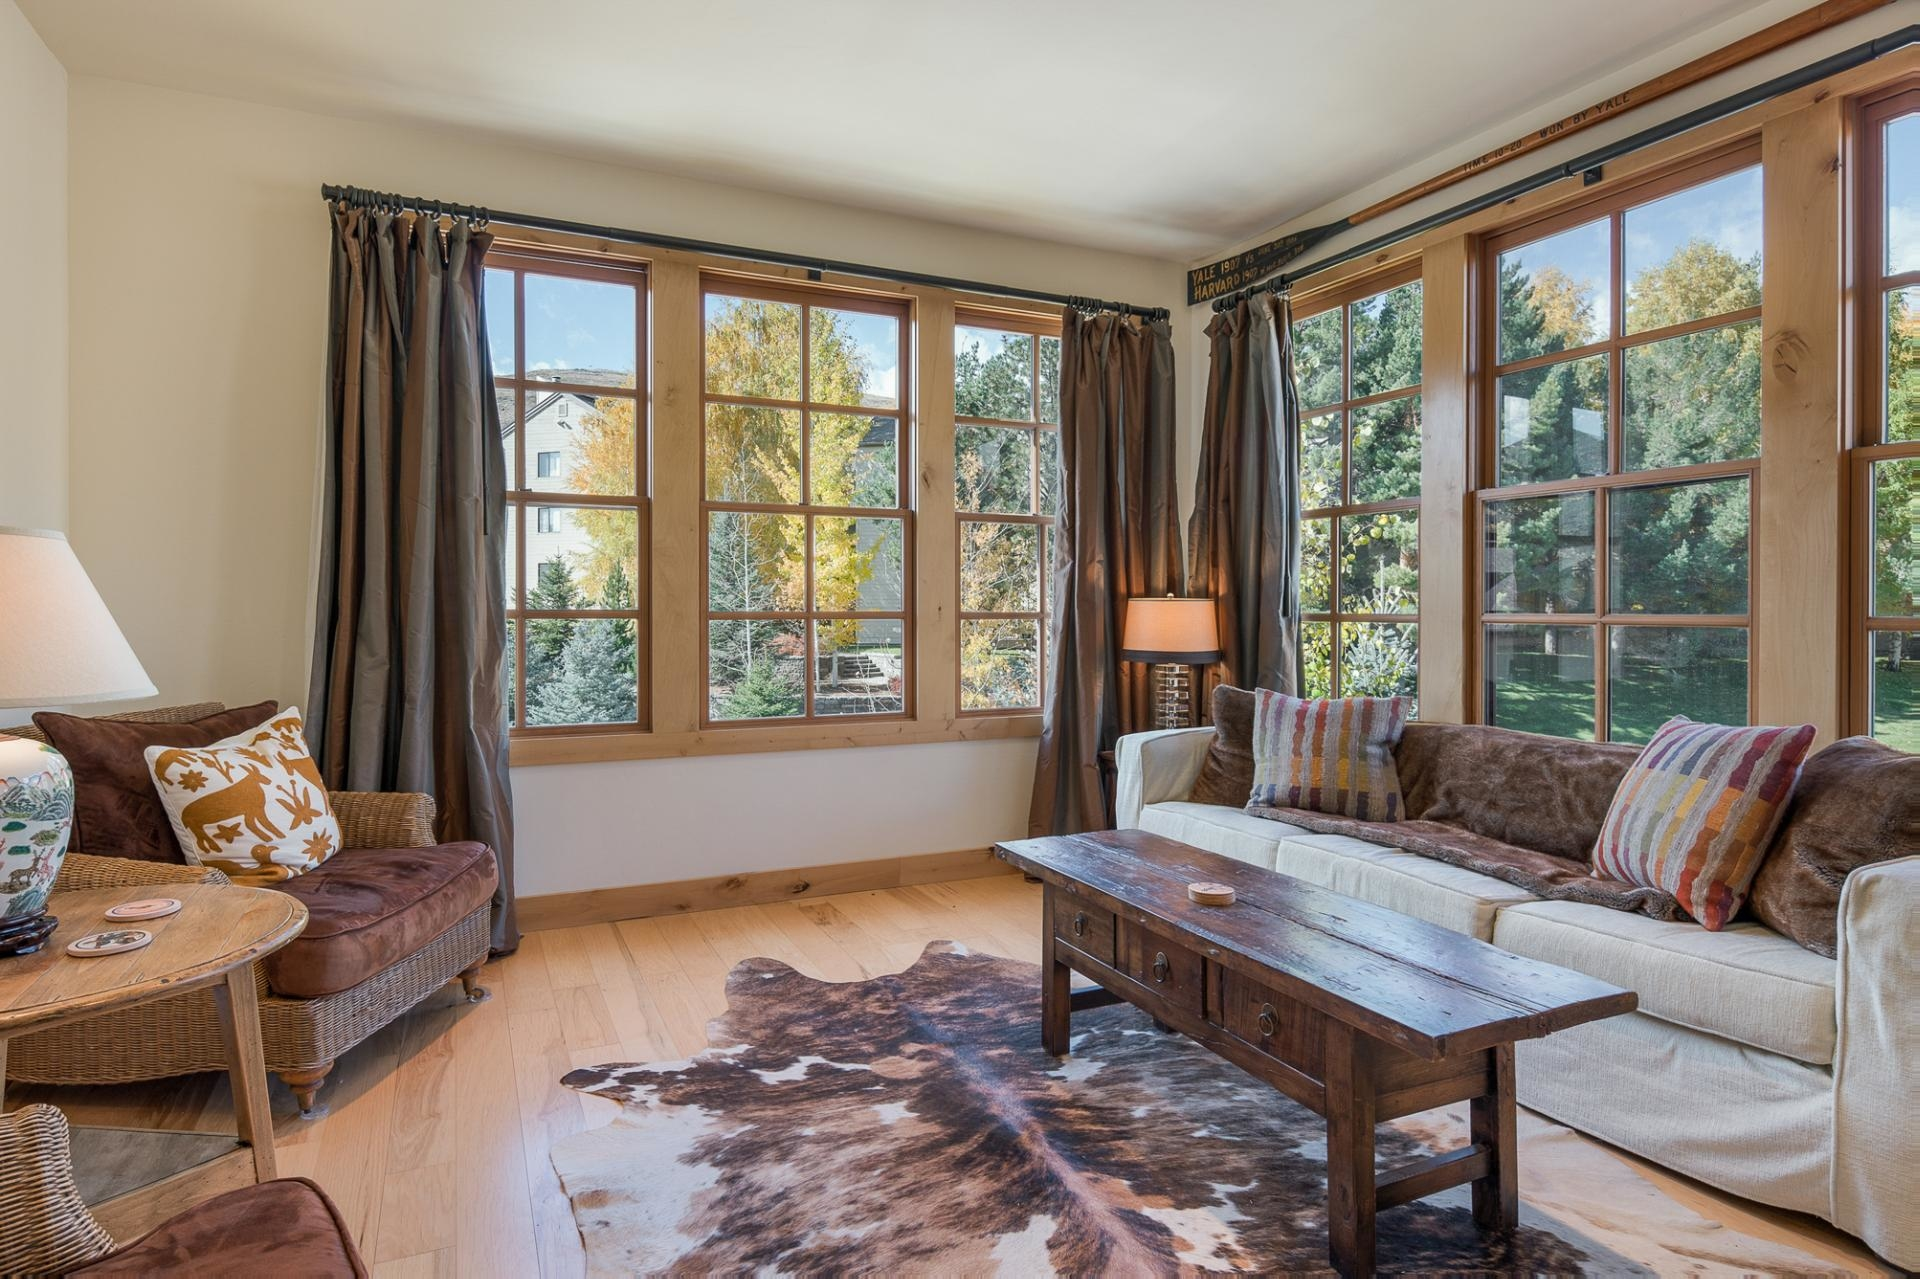 Luxury vacation rentals usa - Idaho - Sun valley - Elkhorn village - 109-11 Elkhorn Springs - Image 1/22